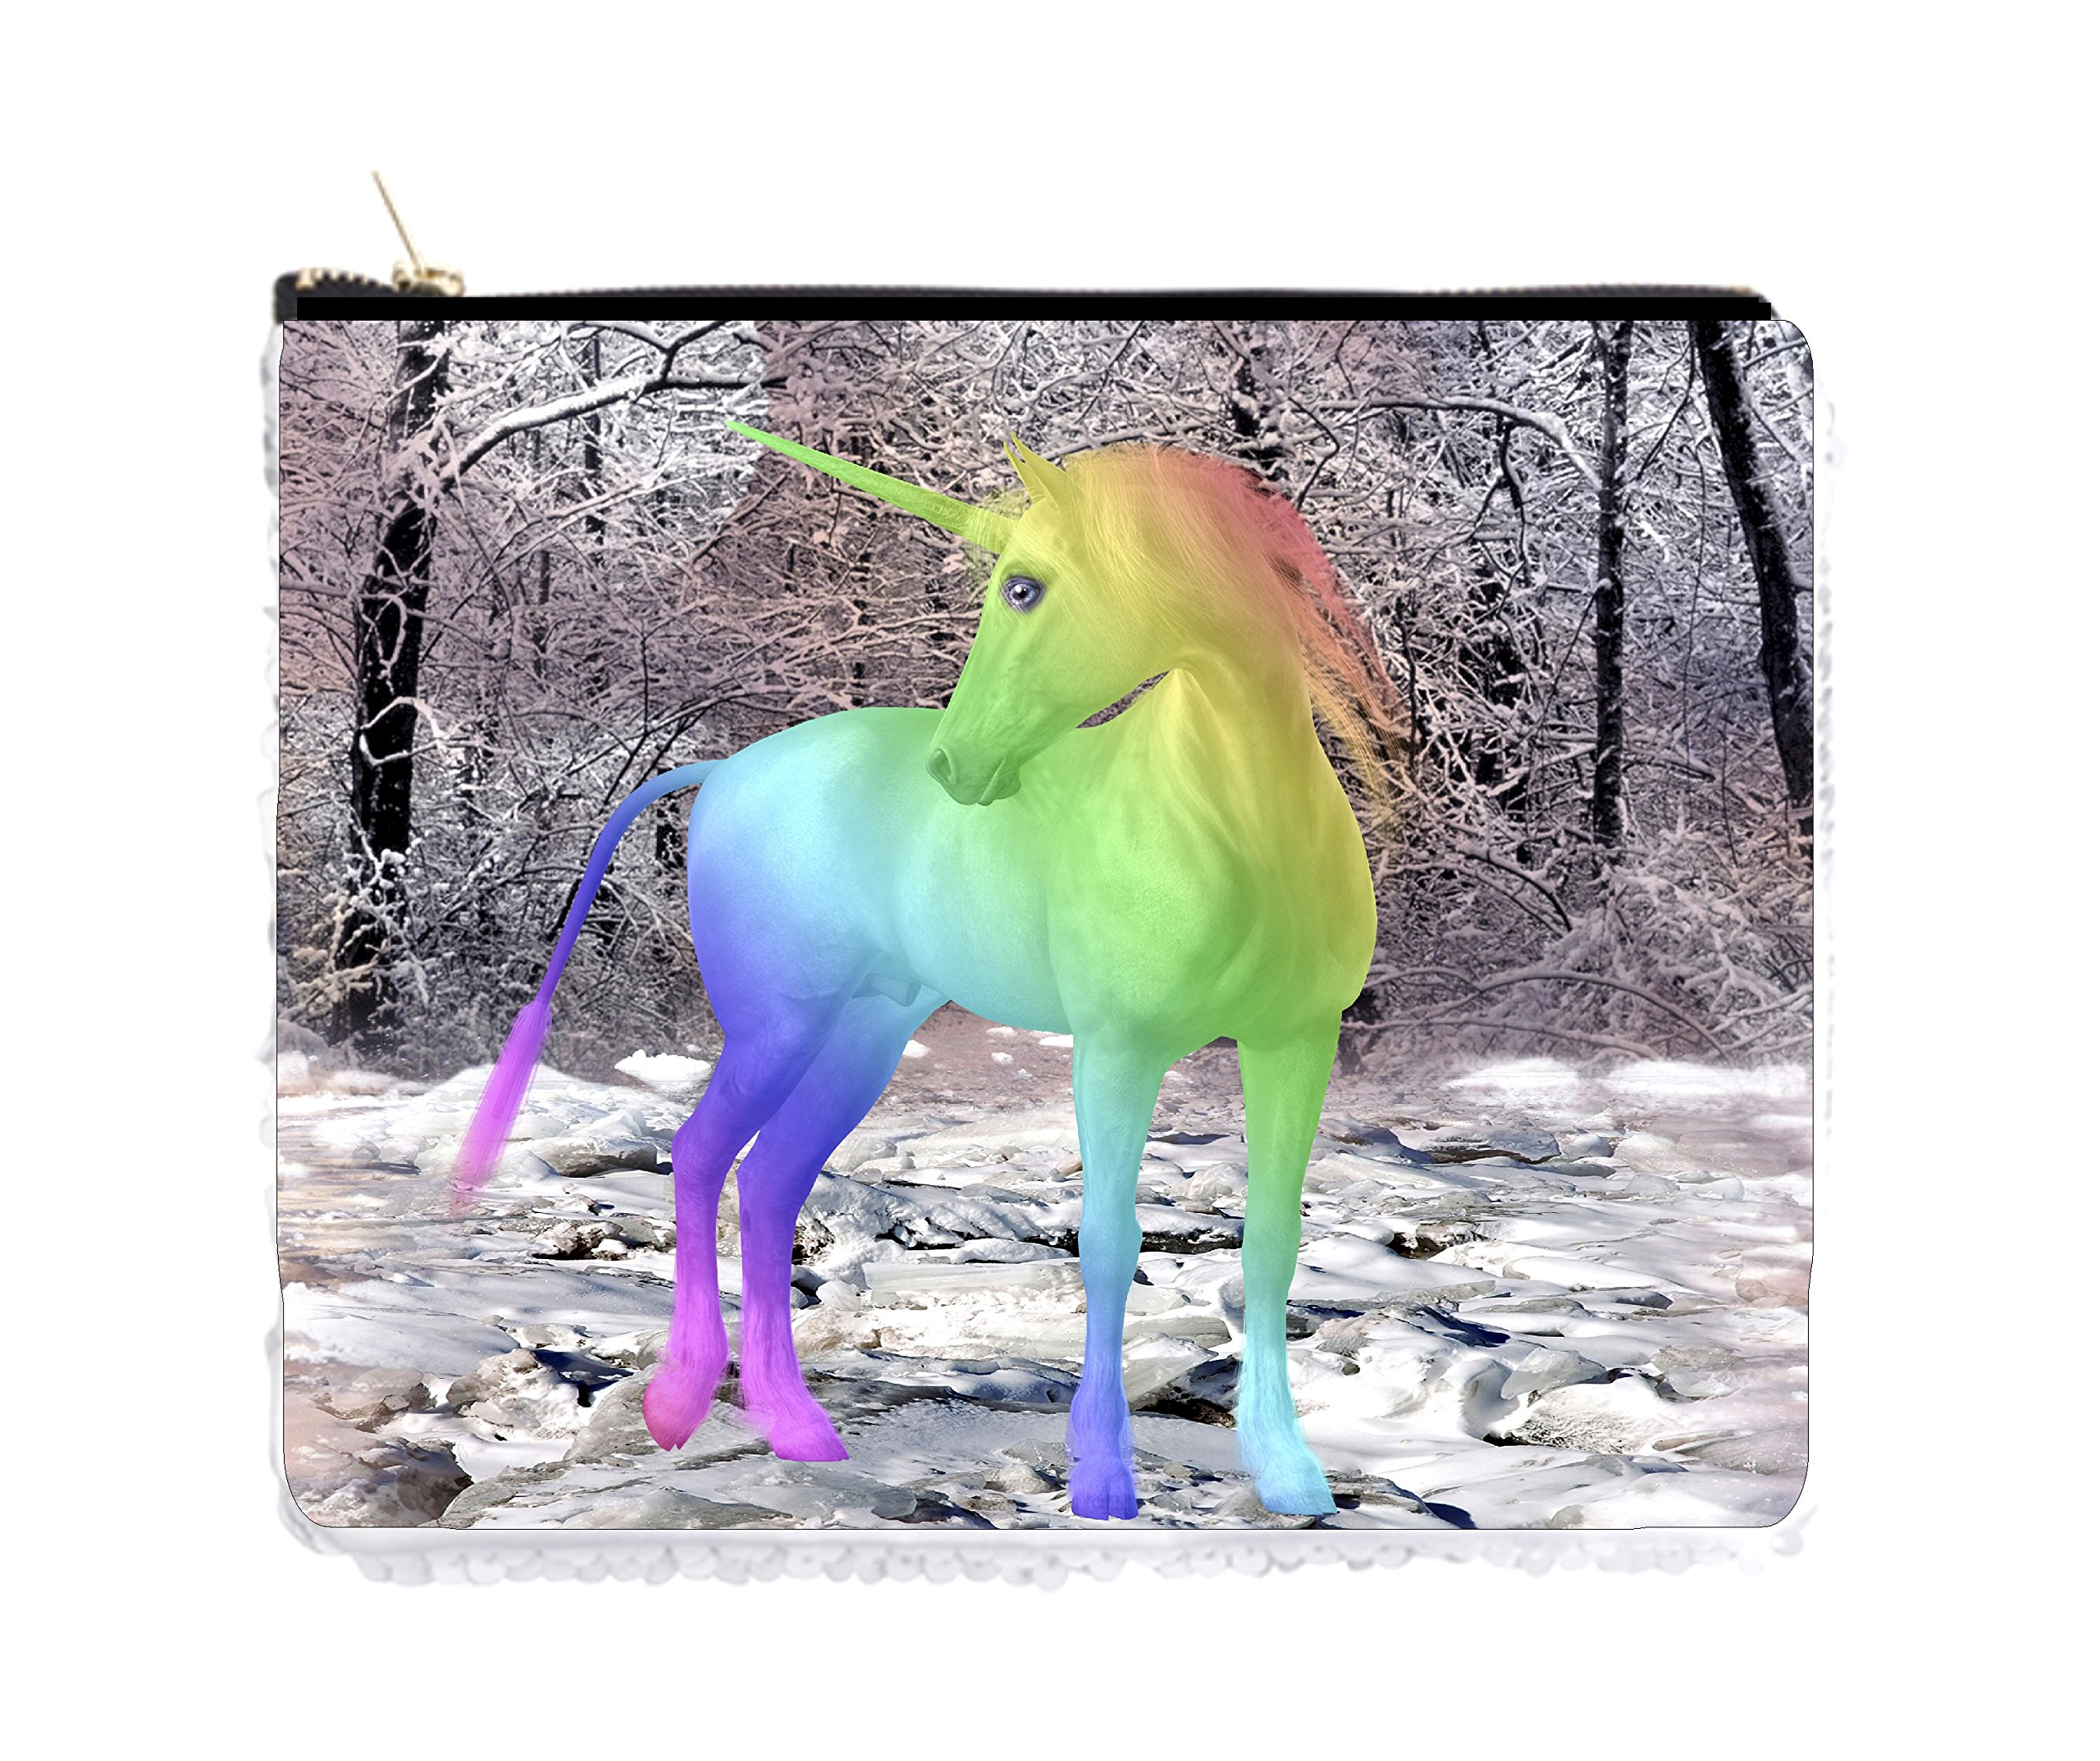 Rainbow Unicorn in a Snowy Forest - Double Sided 6.5'' x 8'' White/Silver Two-Tone Magic Sequin Pencil Case/Bag